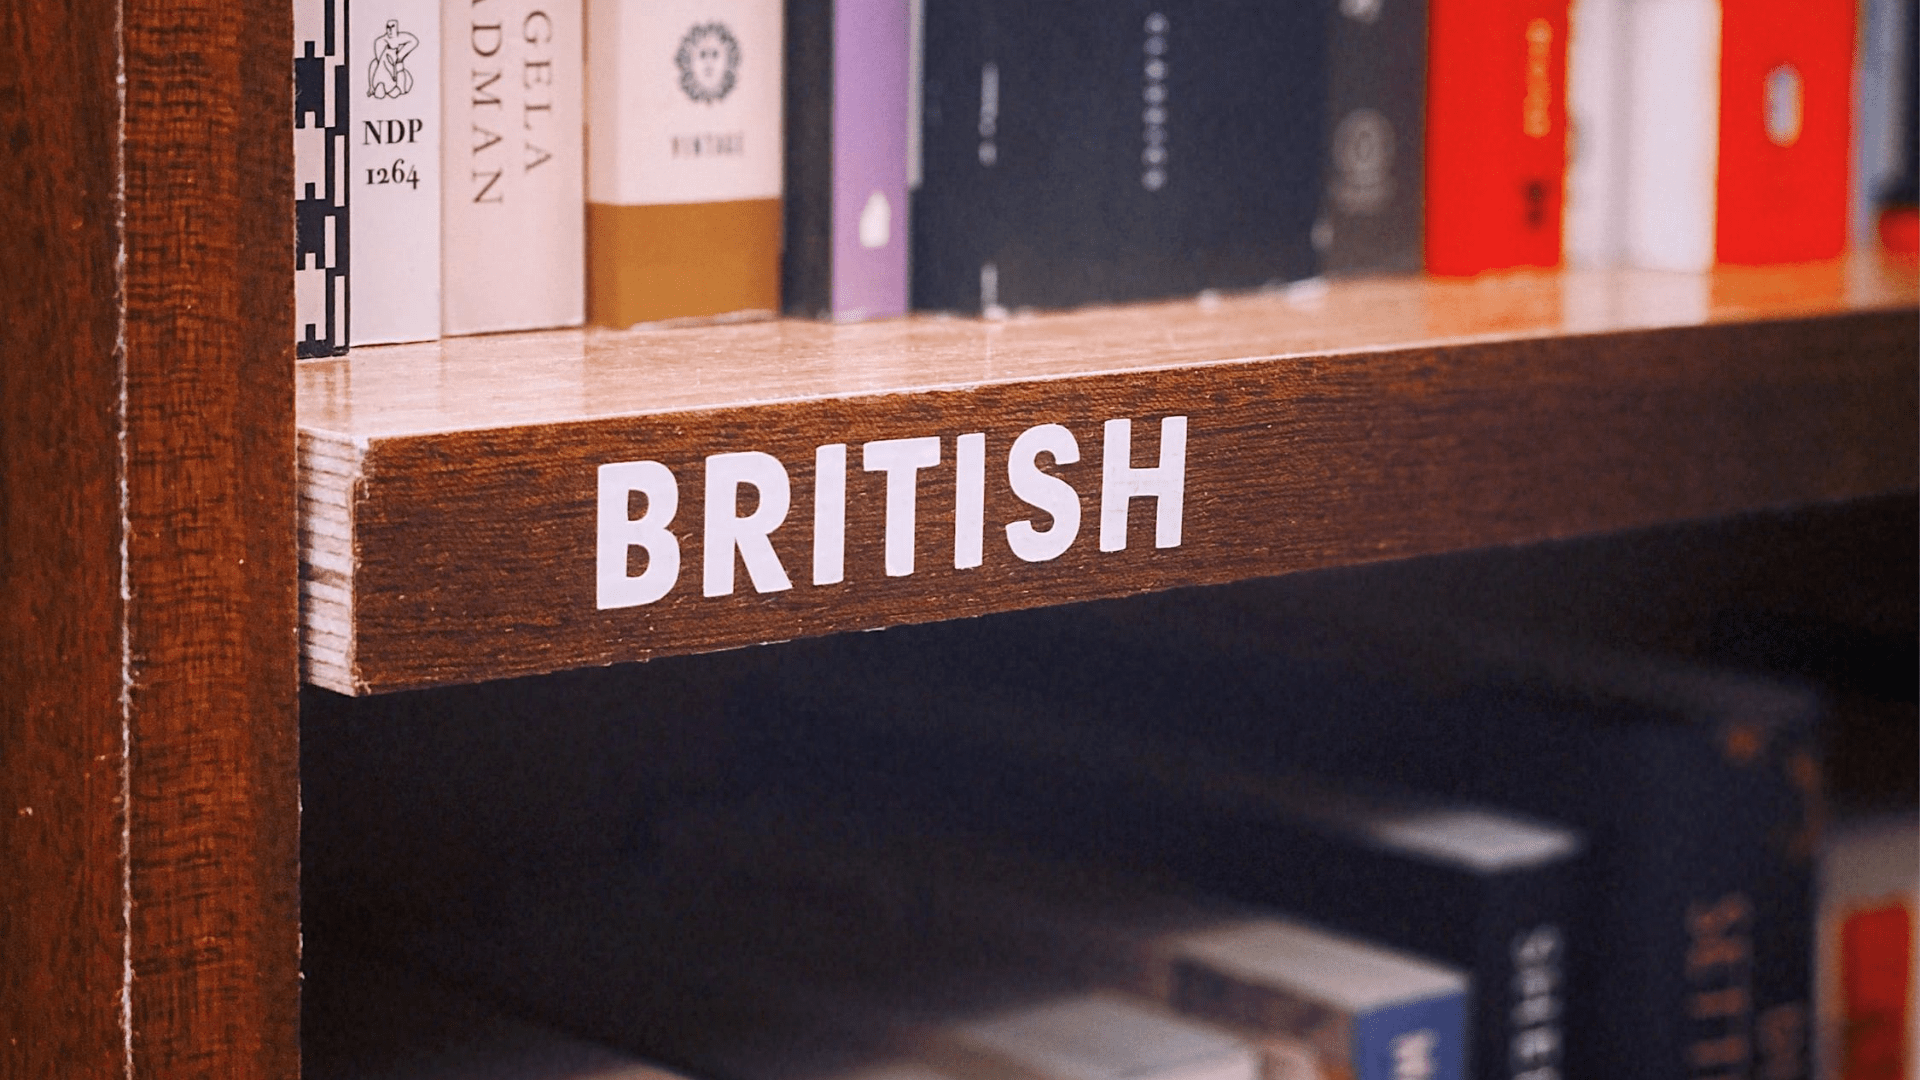 5 tips on how to do business with the British